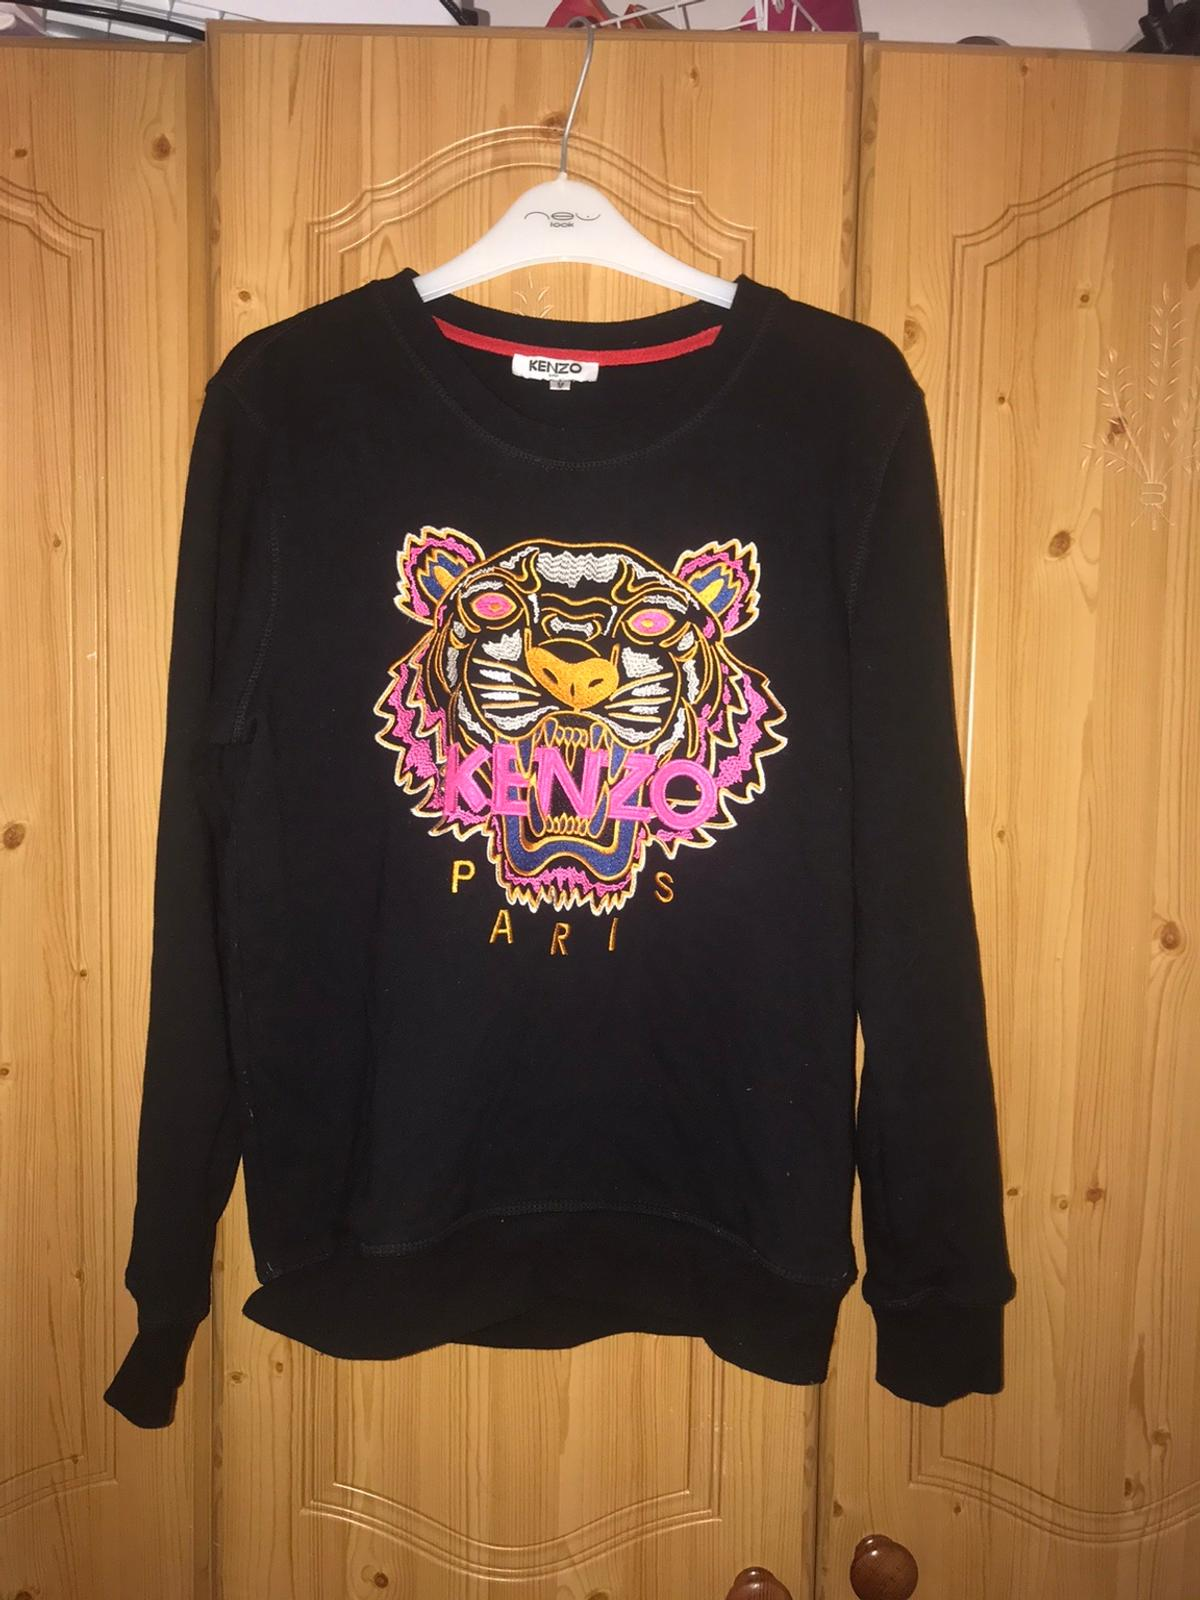 Women's authentic kenzo jumper. Size=medium, womens 8 Worn one, brand new condition. Price is @ £60.00 but I am willing to take offers